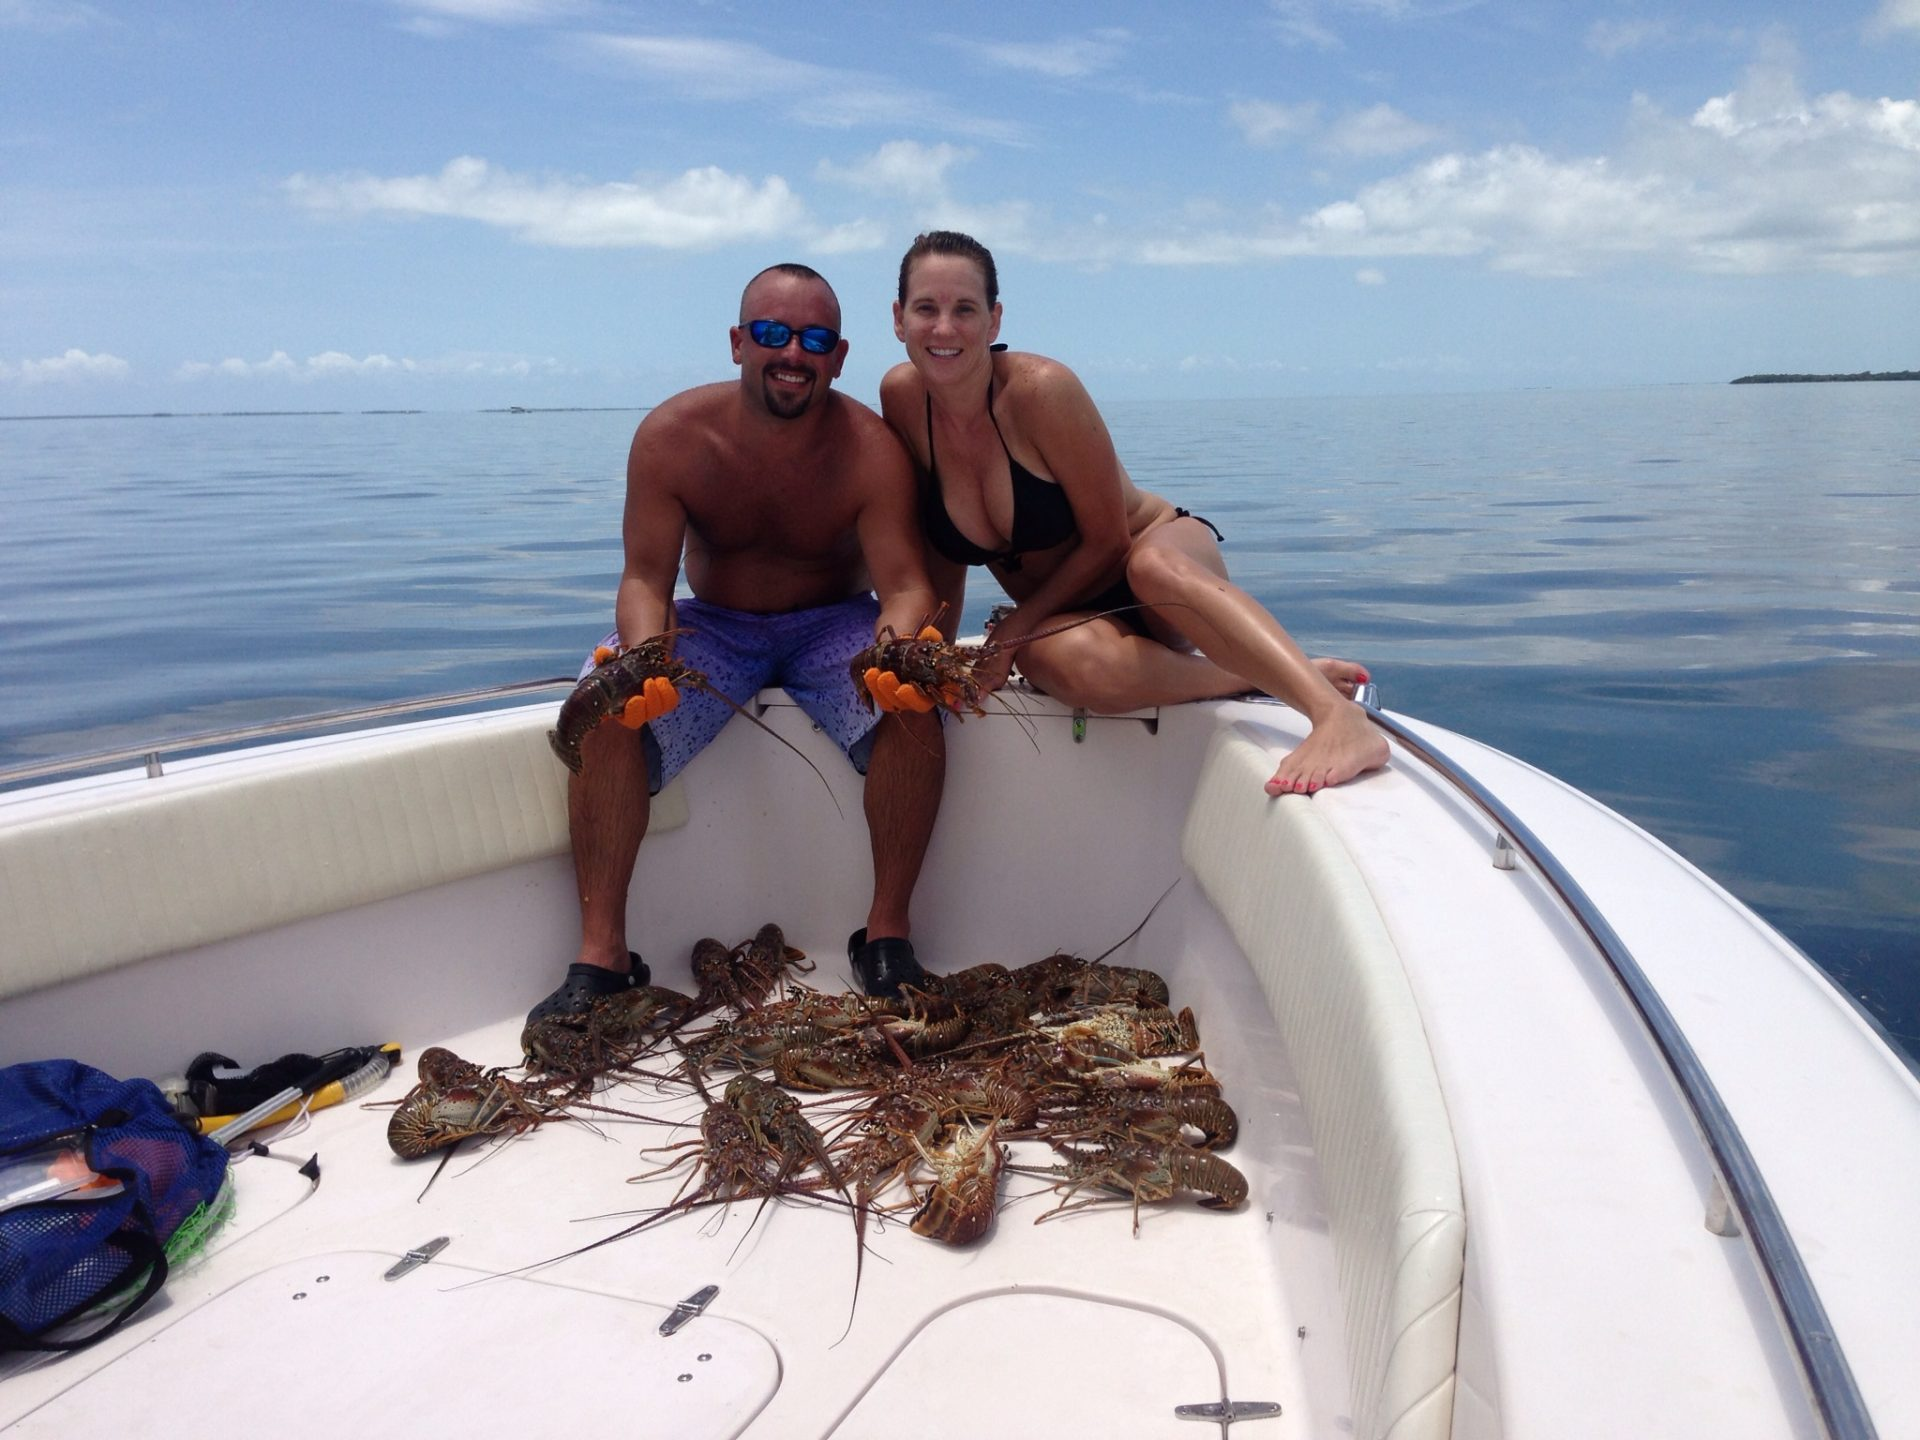 First day of mini season was a success! We got our limit of lobster off Marathon in the Fl Keys by noon. Make sure you ask Capt. Doug about a custom lobster and fishing charter.